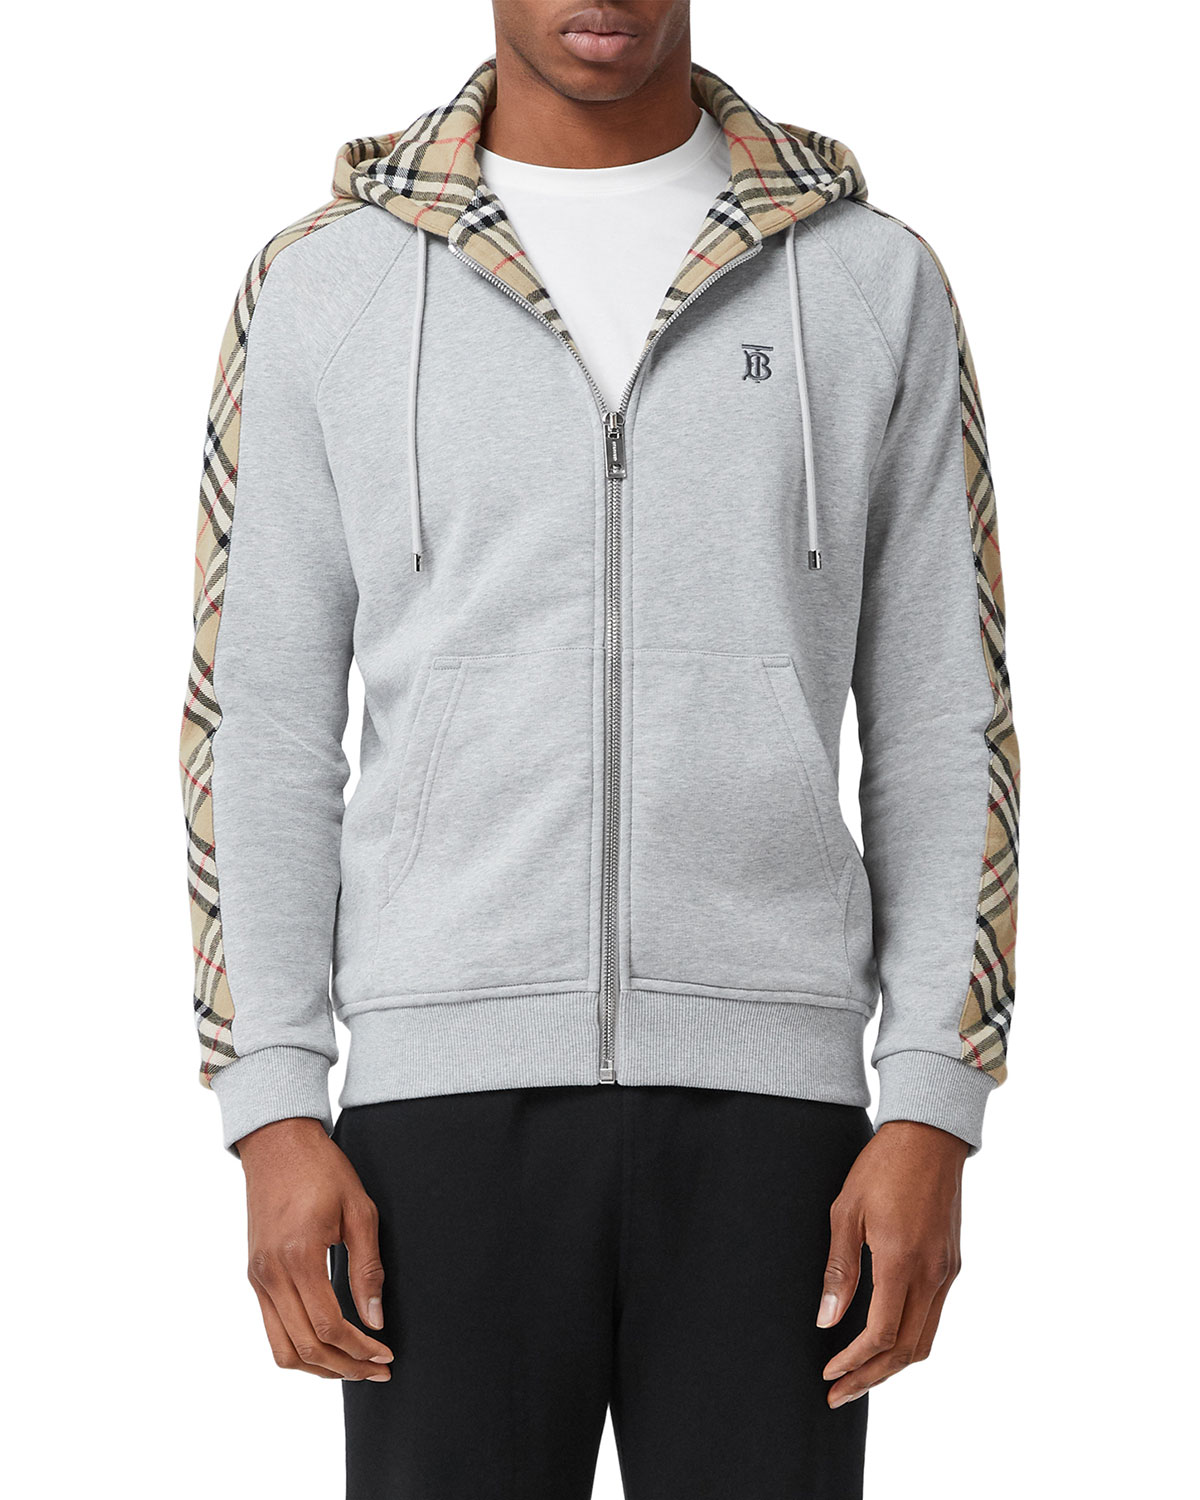 Burberry Men's Kurke Hoodie Sweatshirt w/ Vintage Check Trim